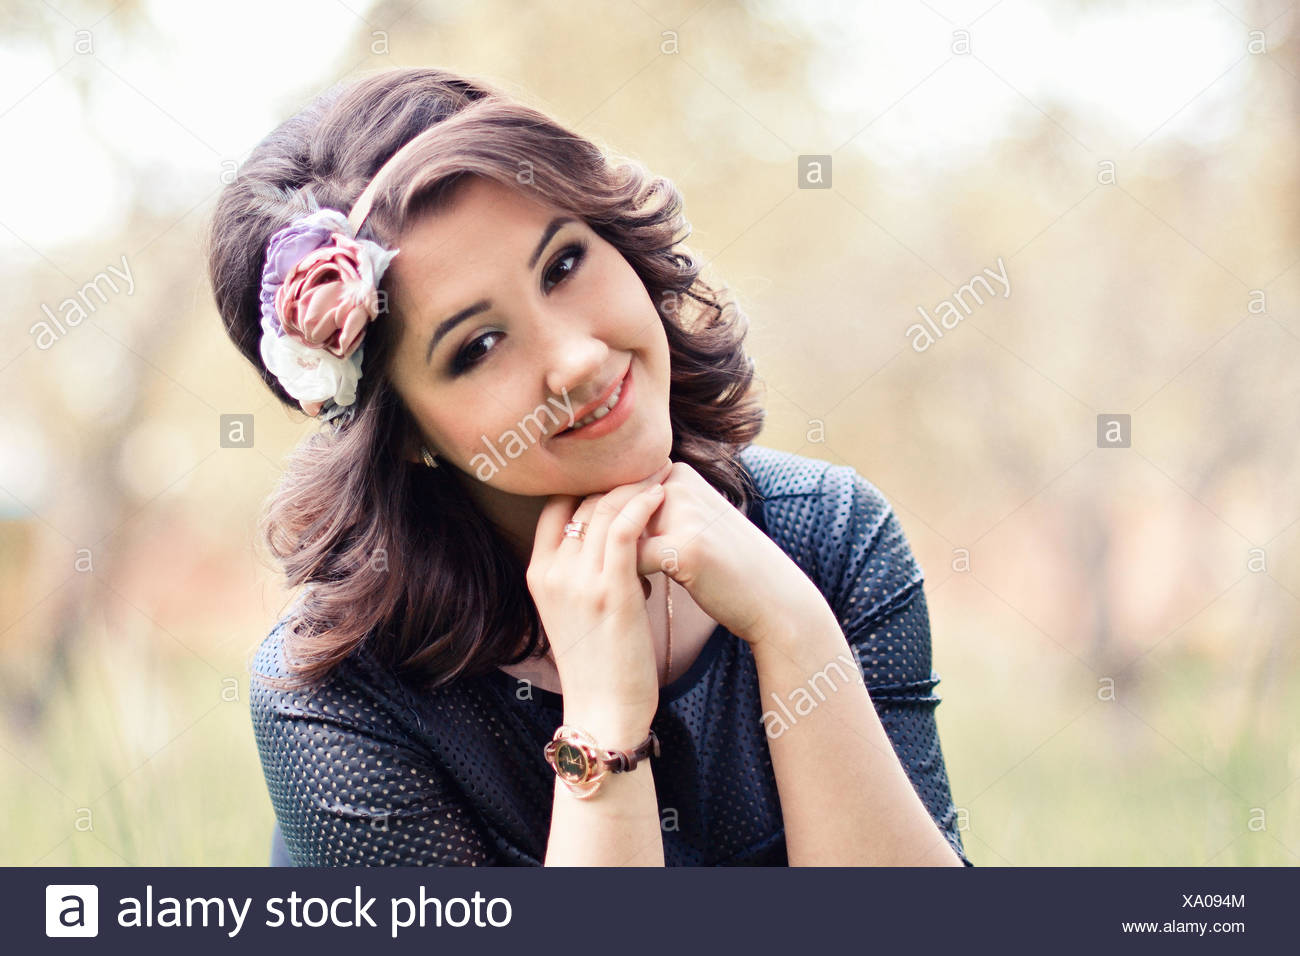 Close up portrait of beautifulcute girl with wreath of rose stunningattractive smile smiling woman in special tones close up portrait of beautifulcute